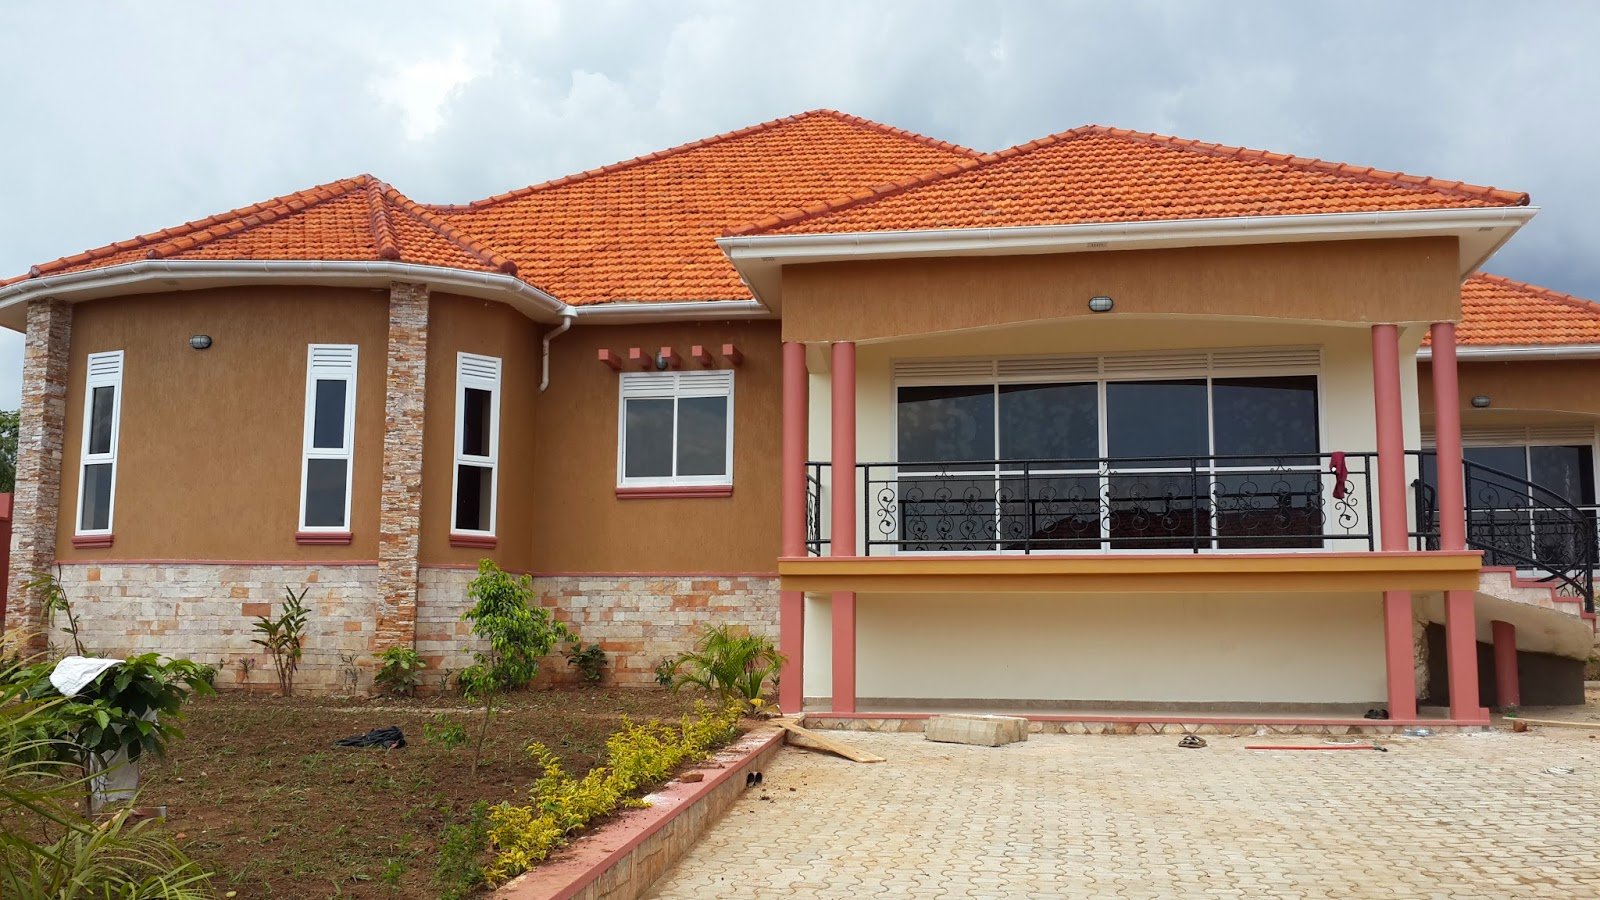 House for sale land size 30 decimals 4 bedrooms asking price 500m